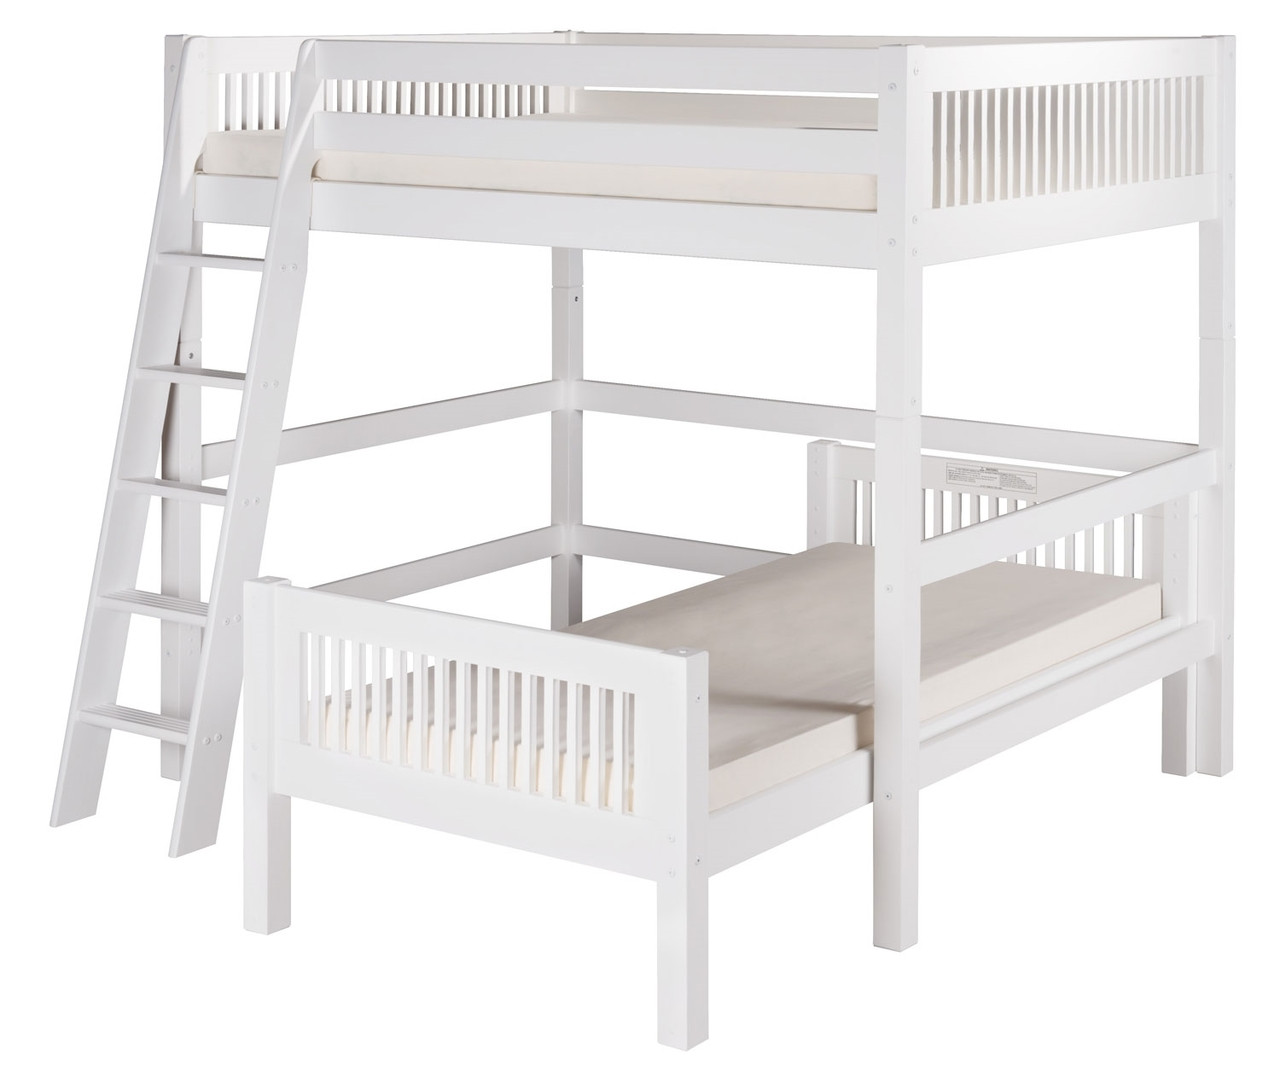 Camaflexi Full Over Twin Size Loft Bed In White Finish E2113 Camaflexi Furniture Solid Wood Kids Furniture